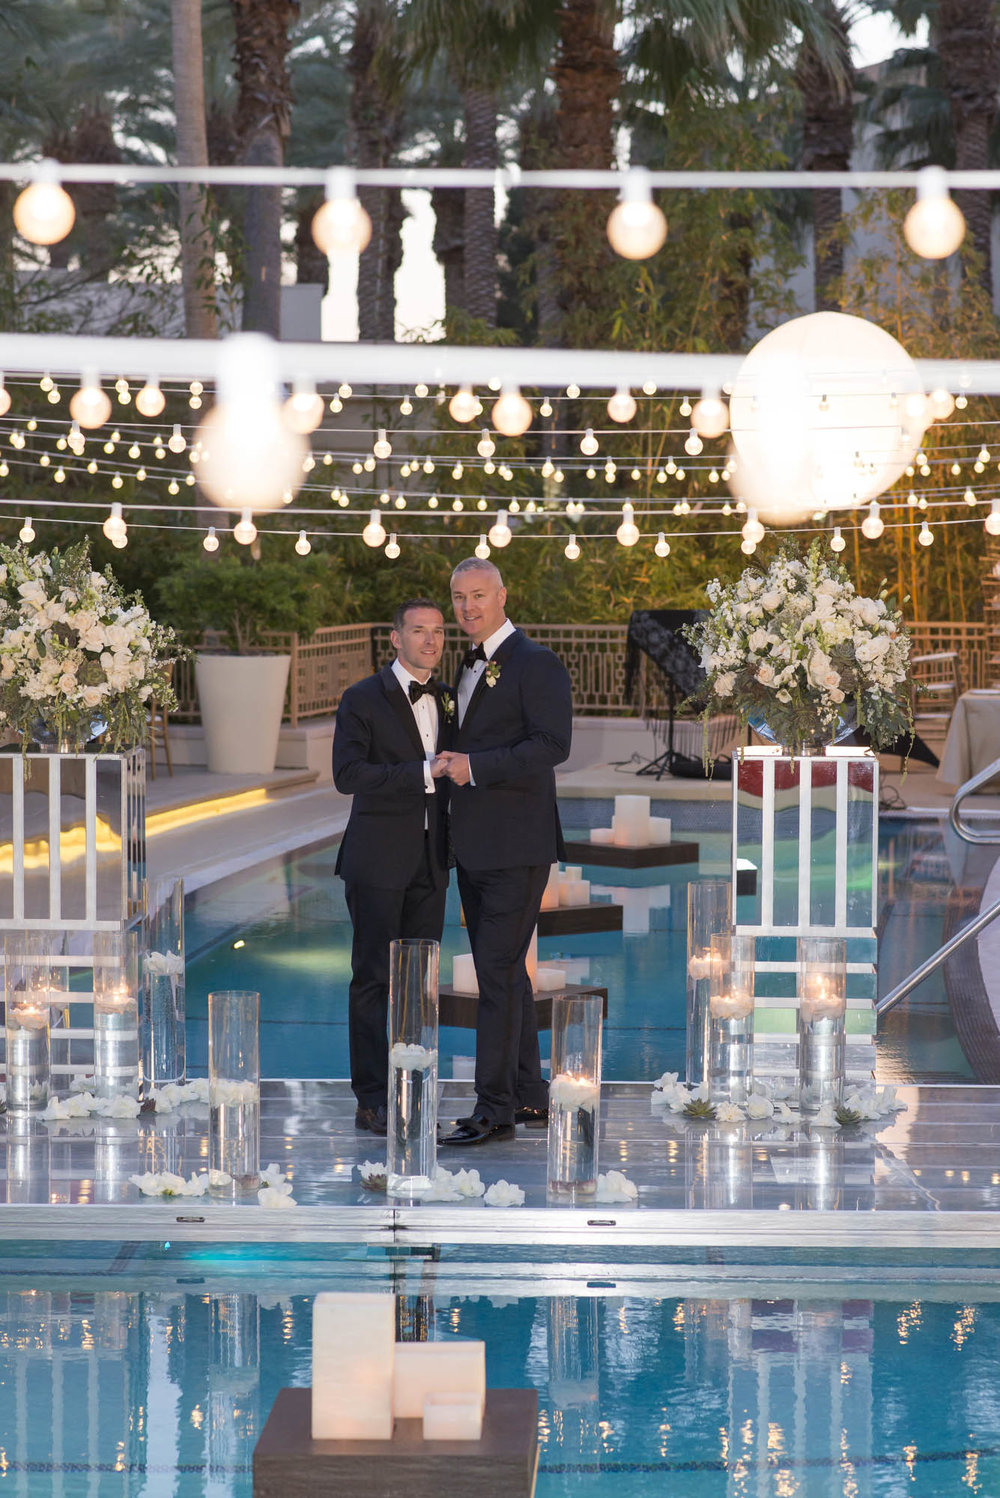 Gay wedding at Red Rock Las Vegas by Wedding Planner Andrea Eppolito.  Phtoo by AltF.